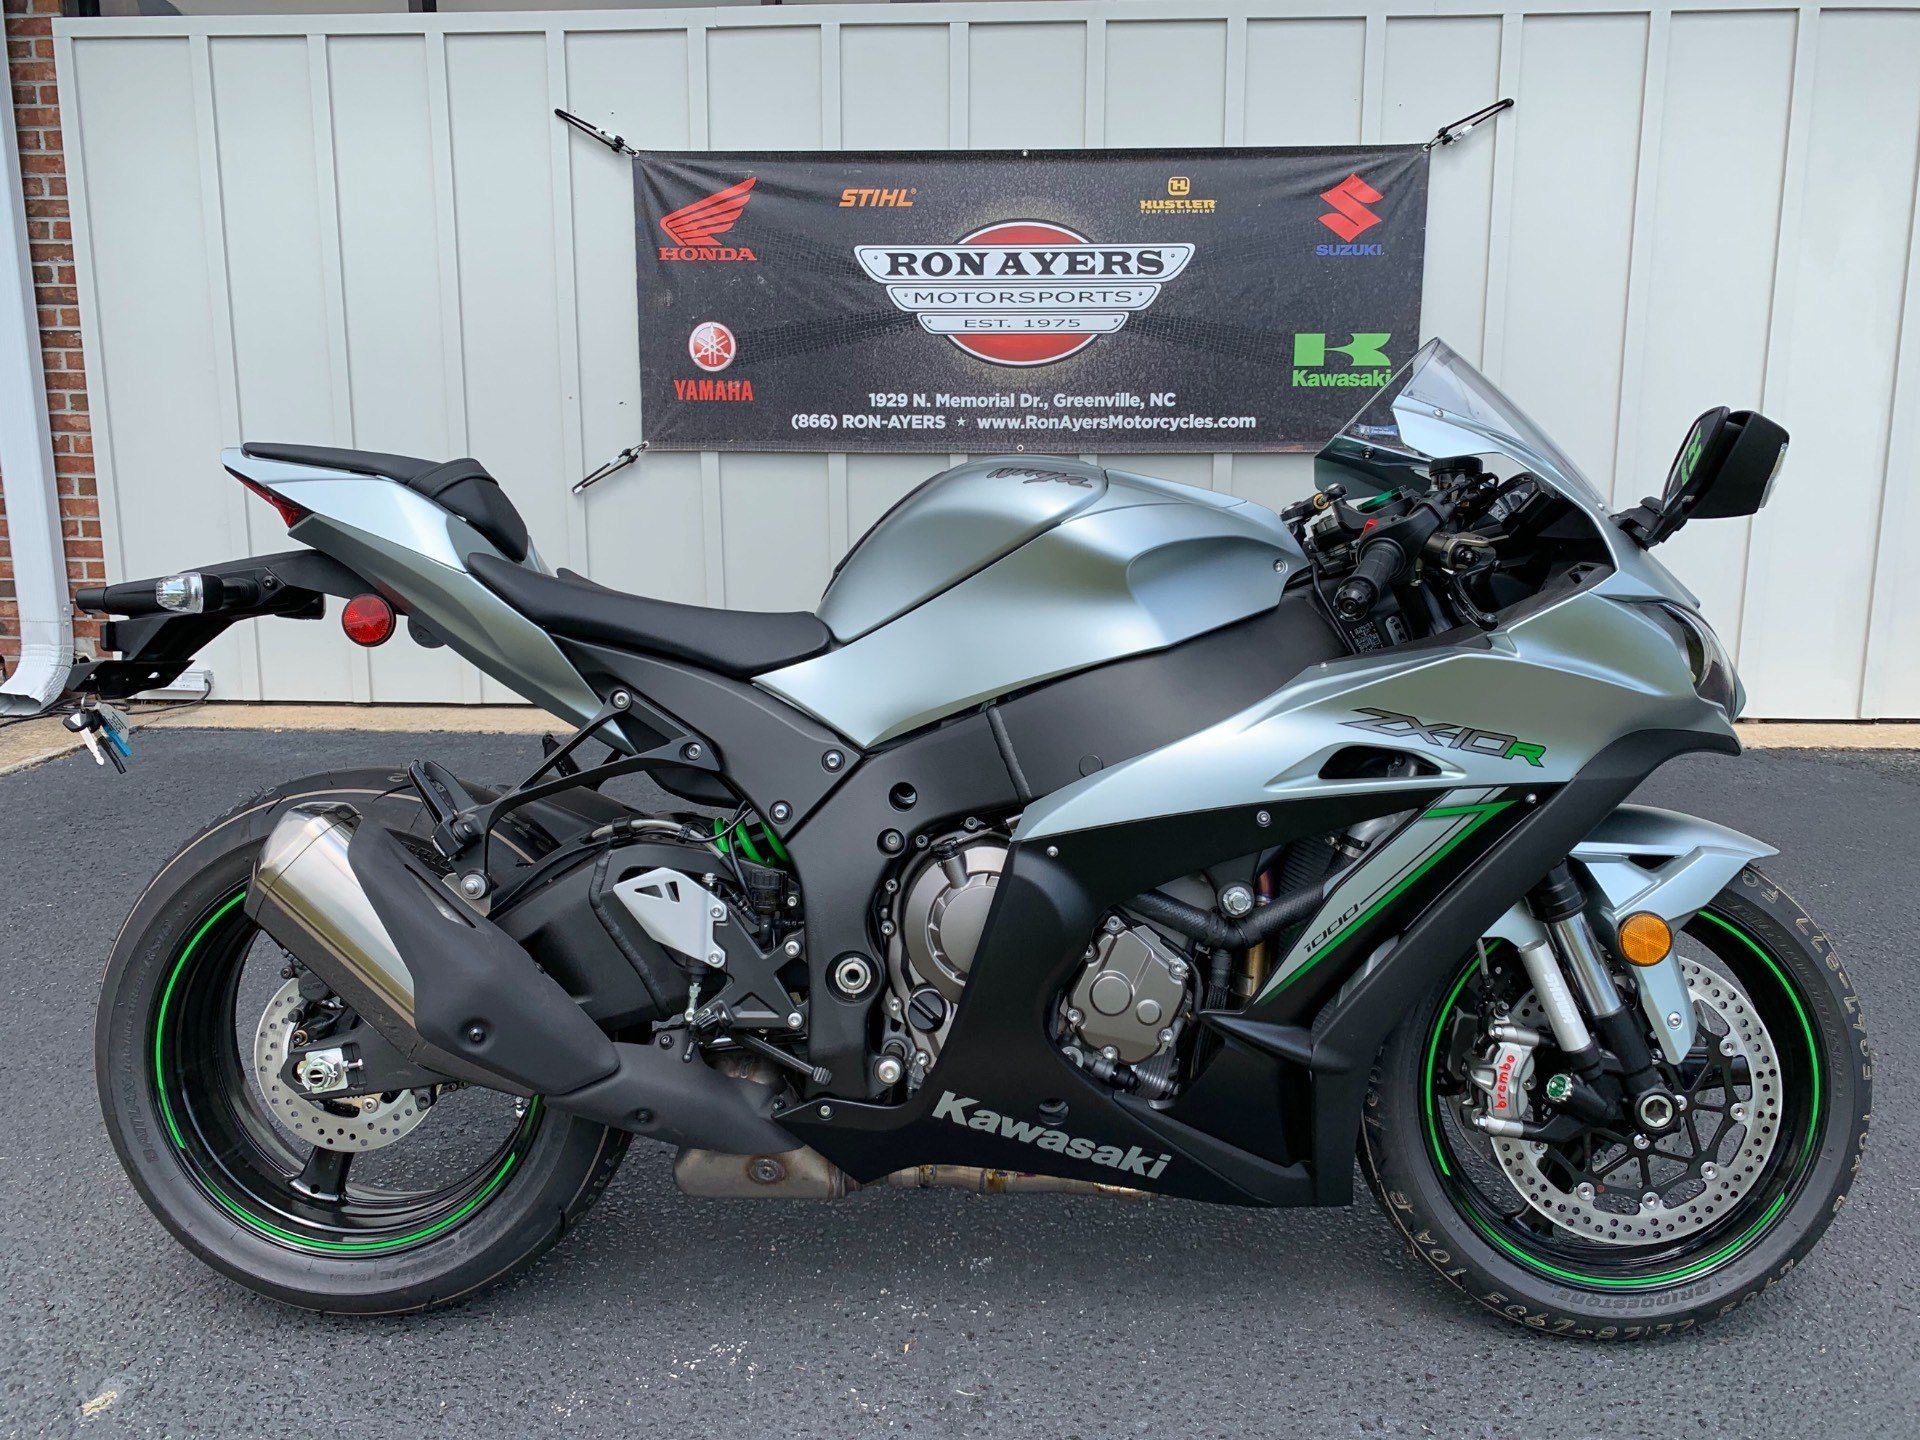 New 2018 Kawasaki Ninja Zx 10r Abs Motorcycles In Greenville Nc